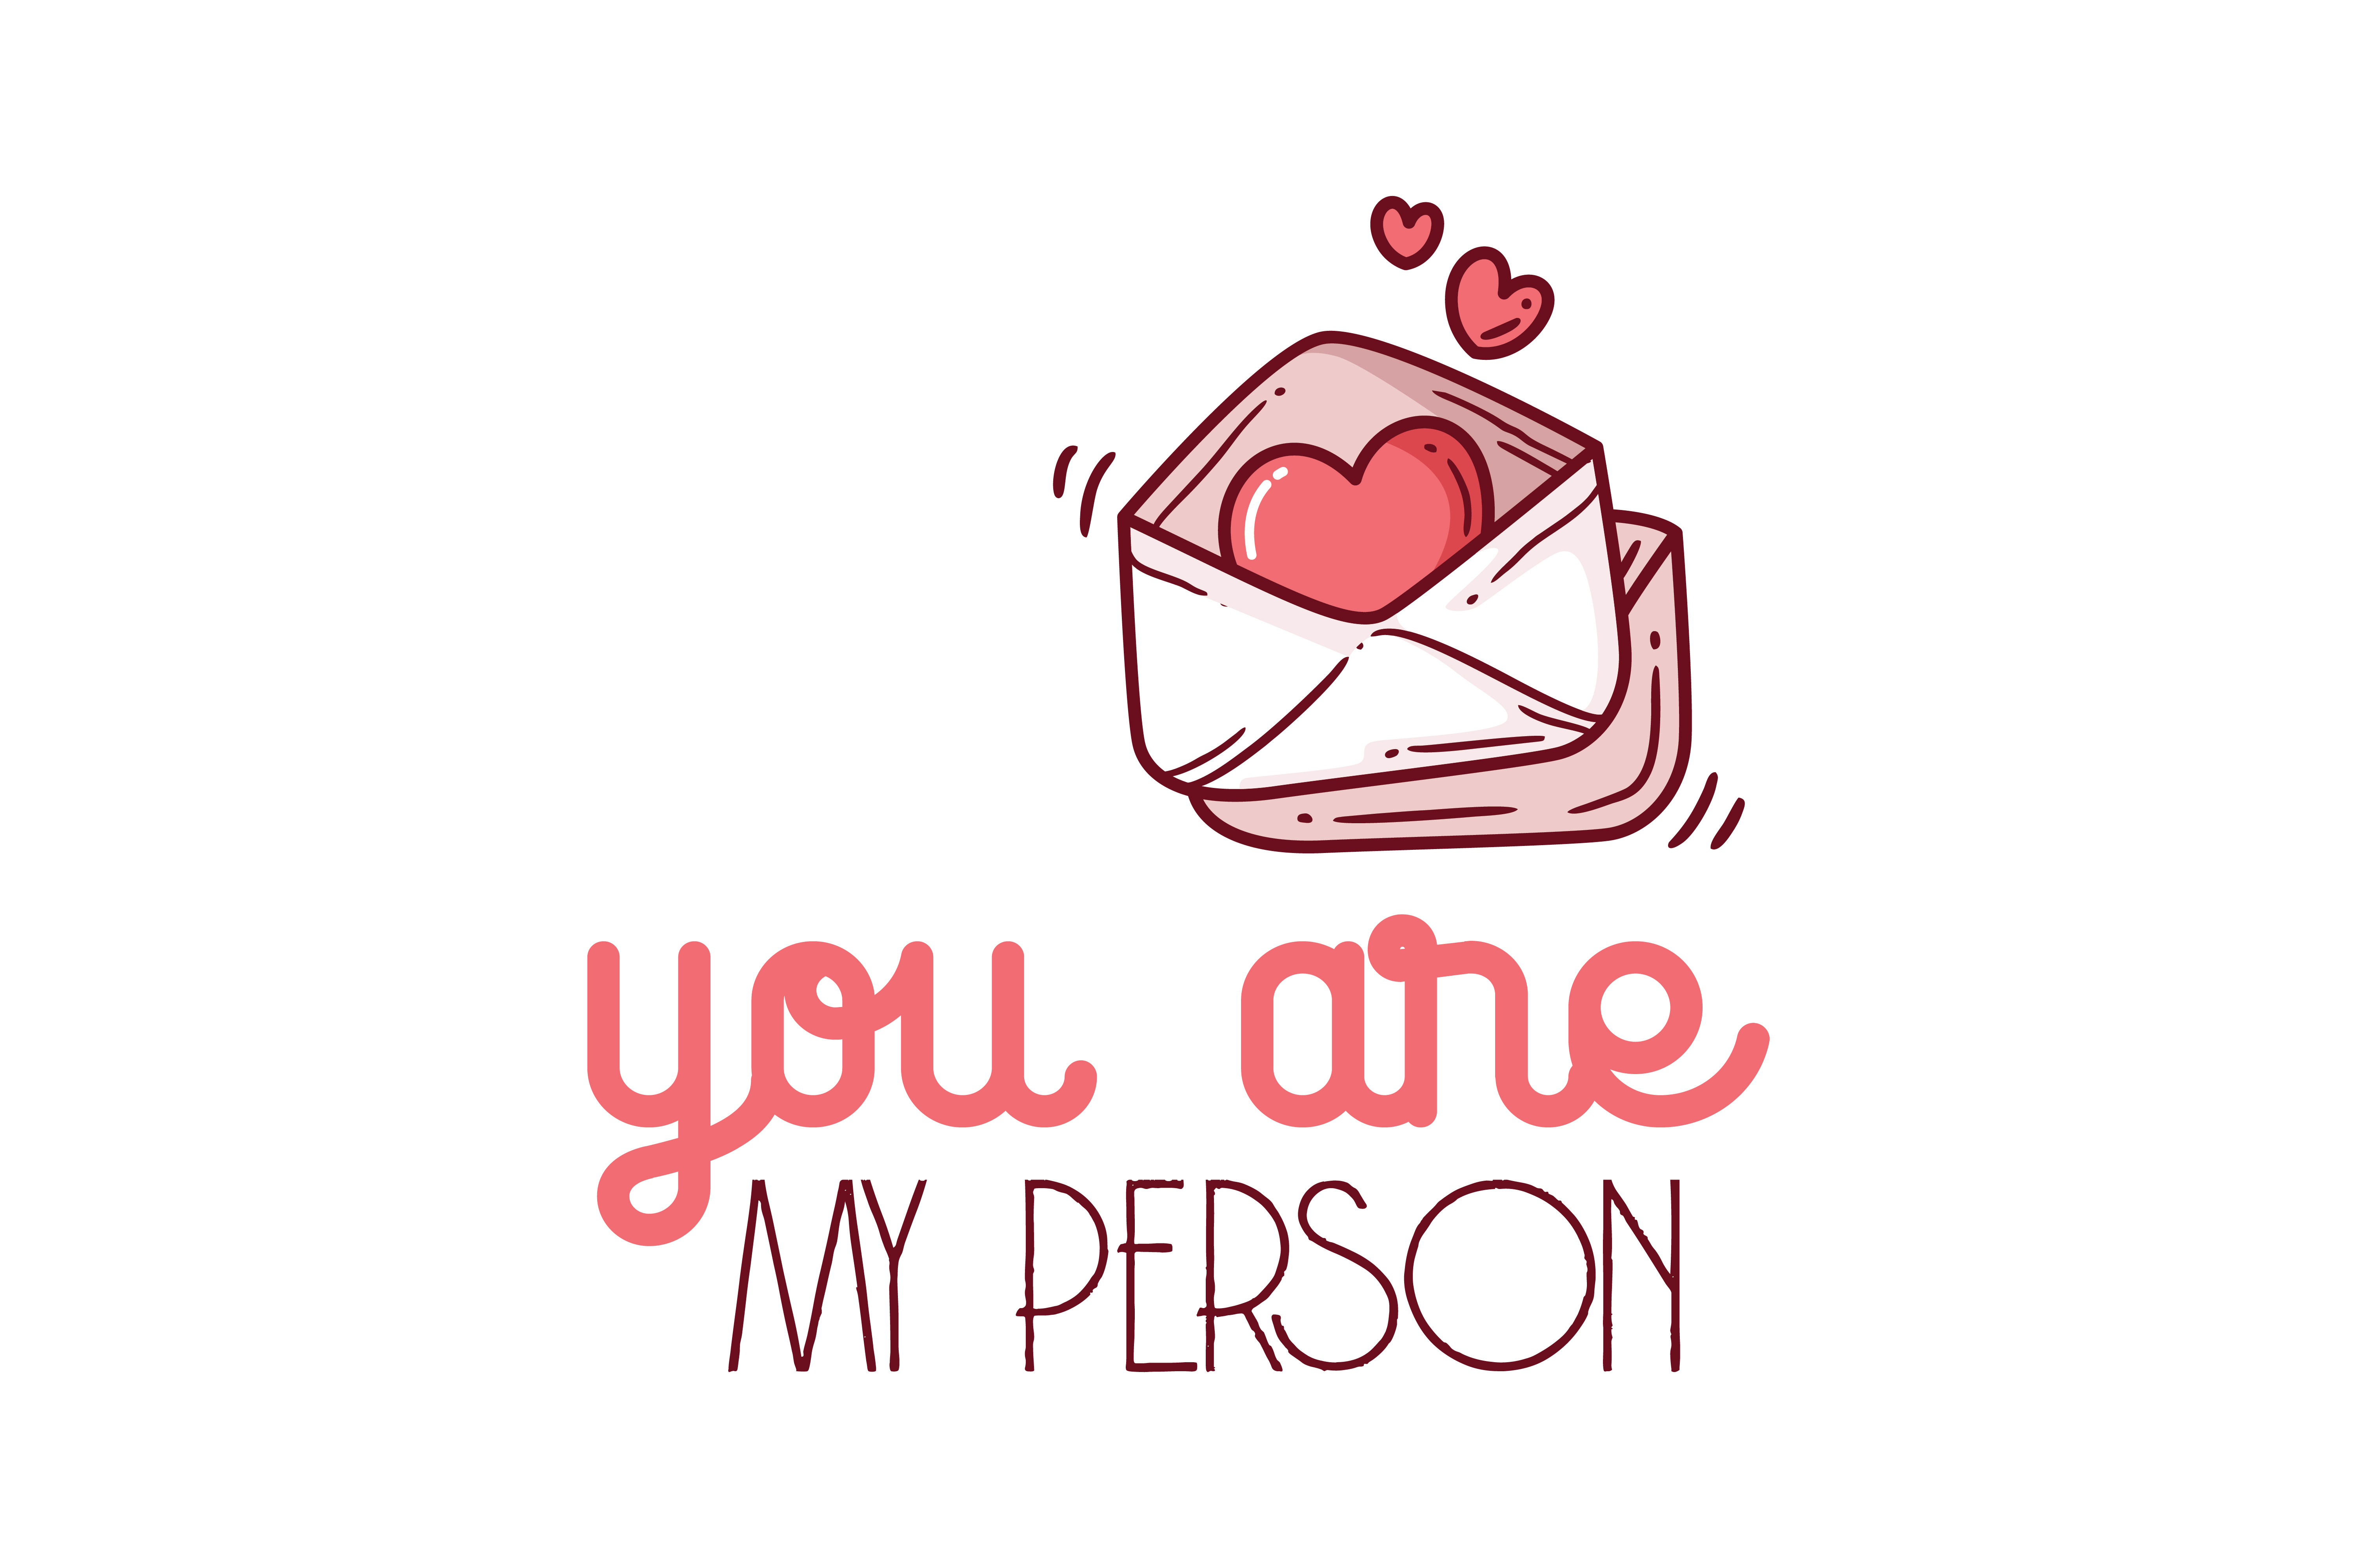 You are my person Quote SVG Cut